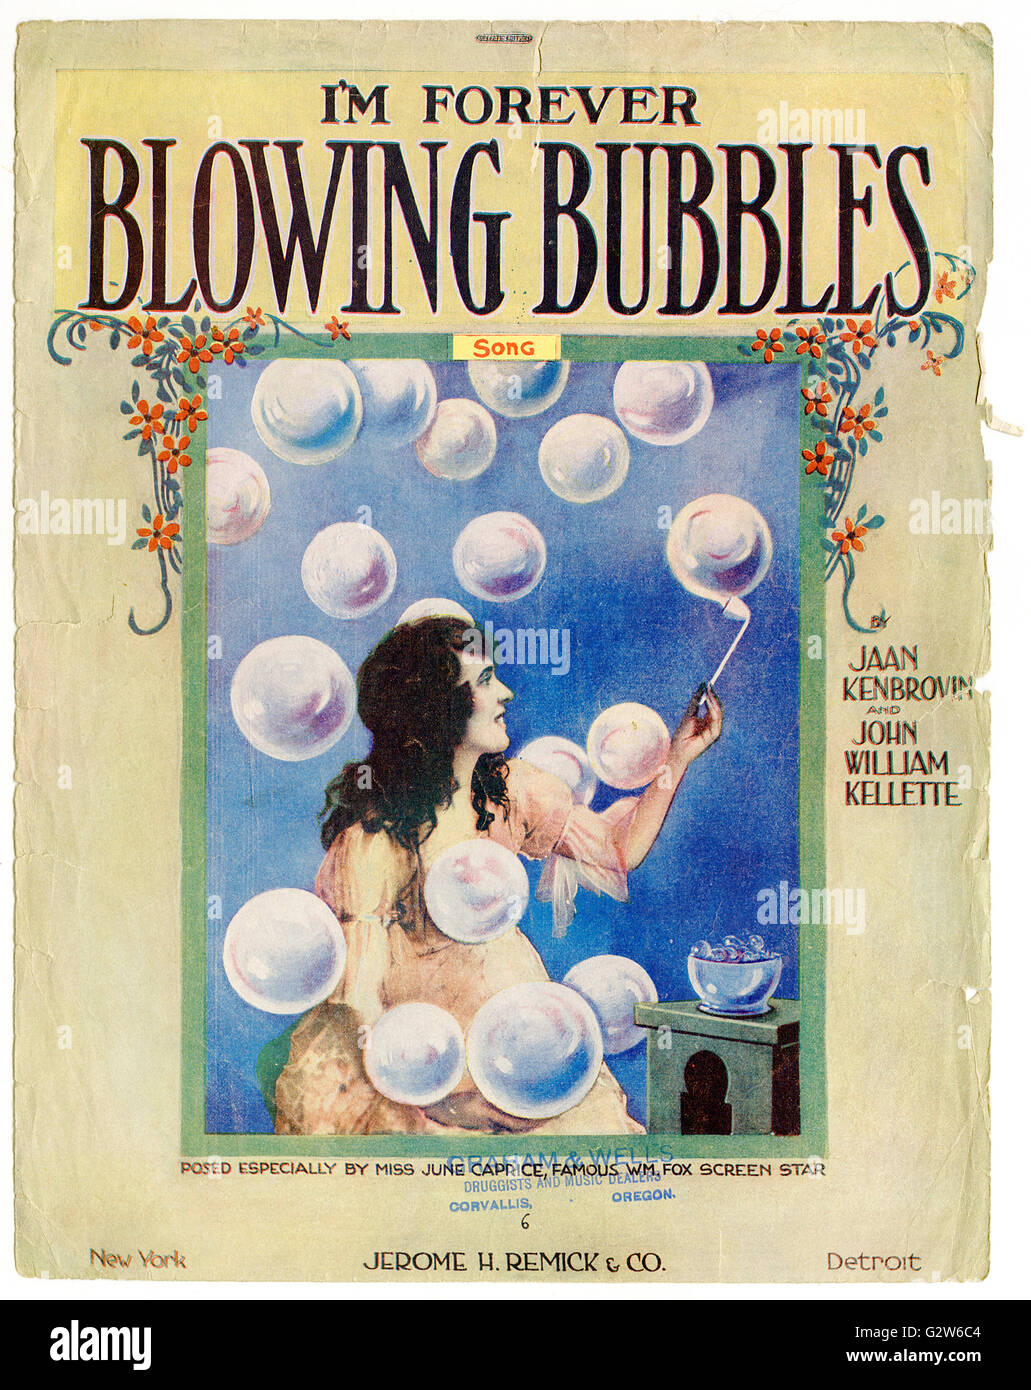 """Piano sheet music cover of """"I'm Forever Blowing Bubbles"""" by Jaan Kenbrovin and John William Kellette featuring Miss - Stock Image"""